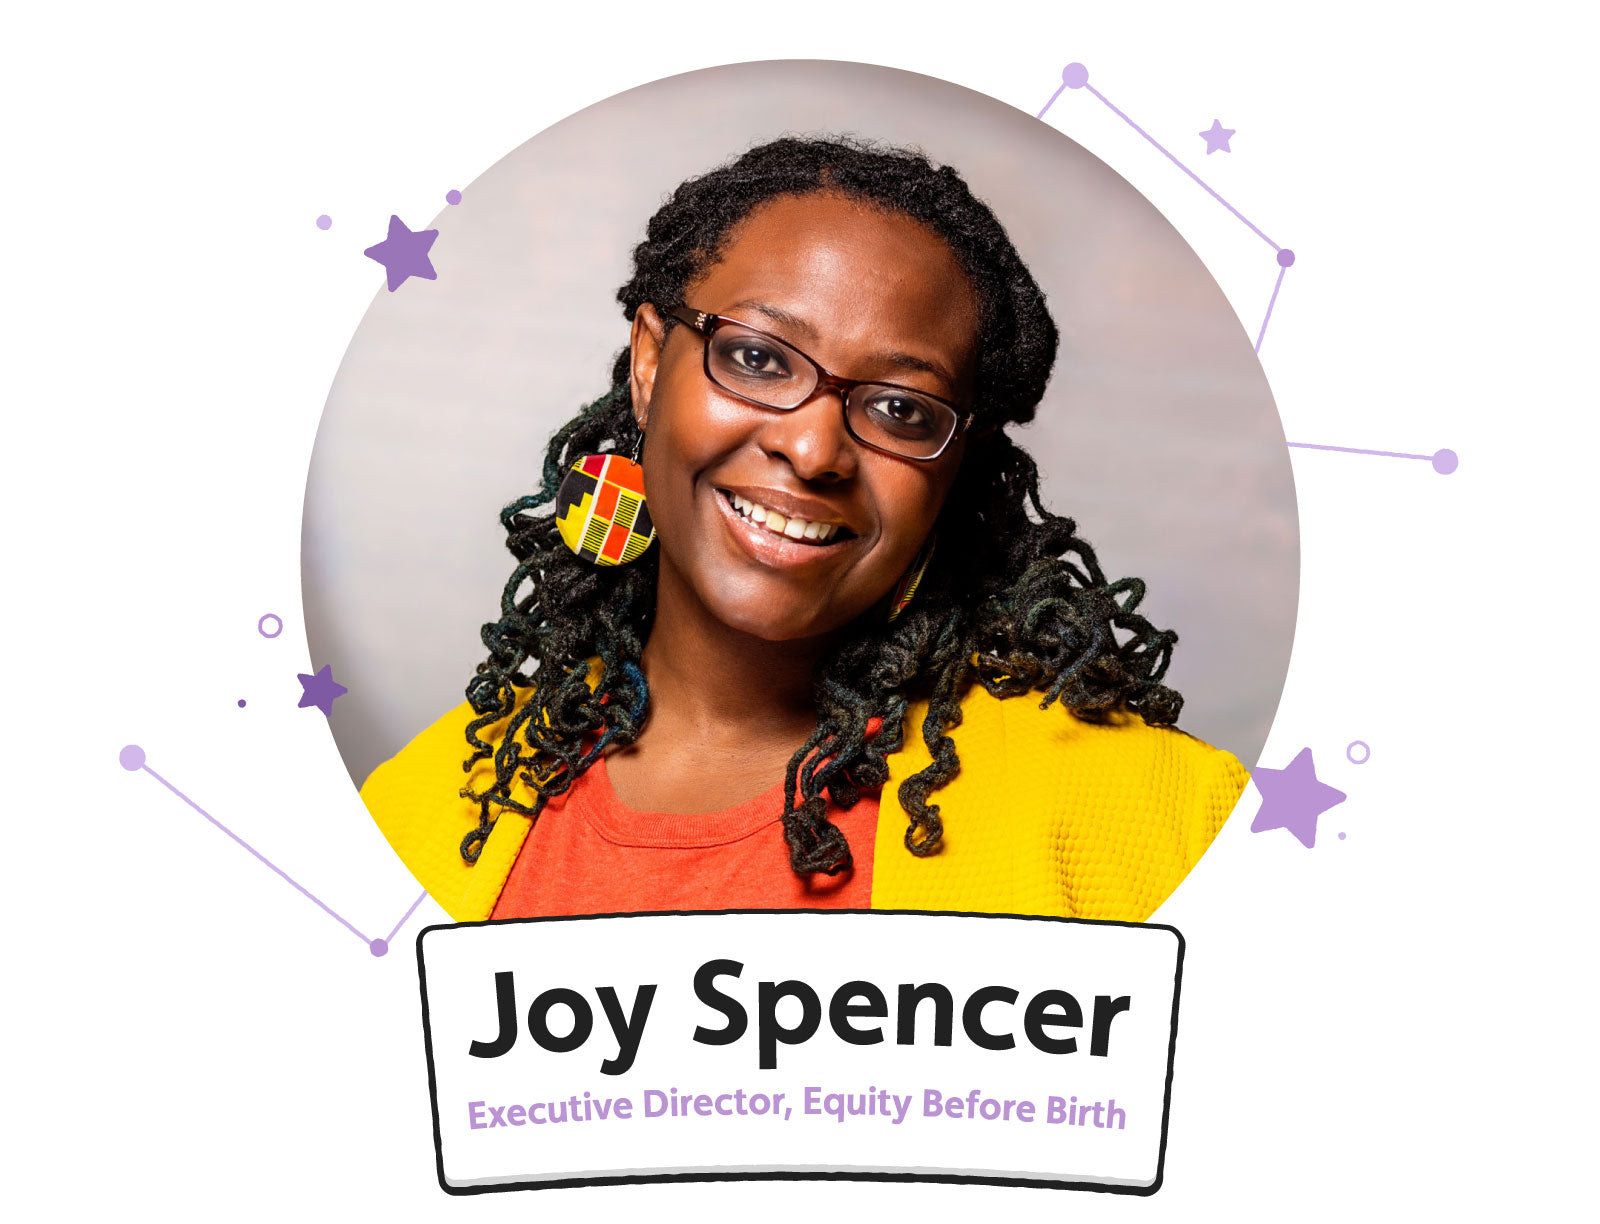 Portrait of Joy Spencer, Executive Director of Equity Before Birth